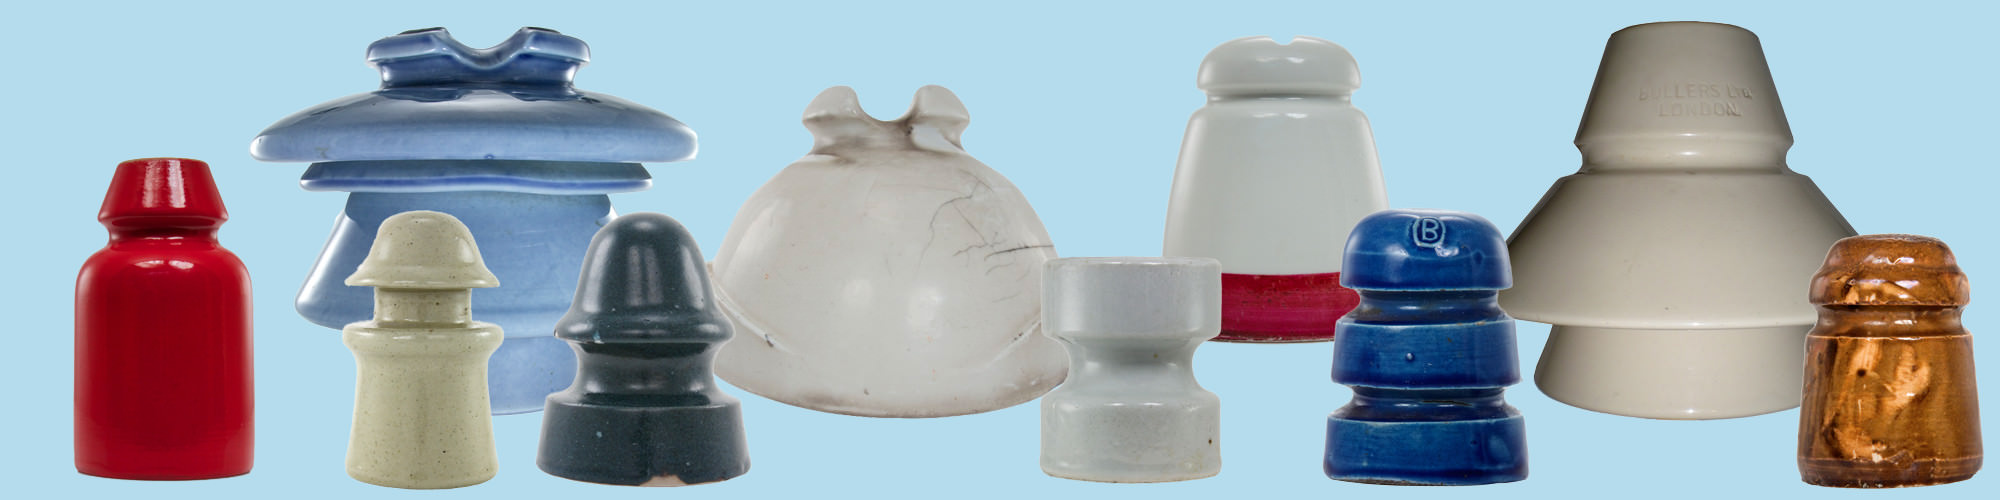 Unipart Porcelain Insulators (U)